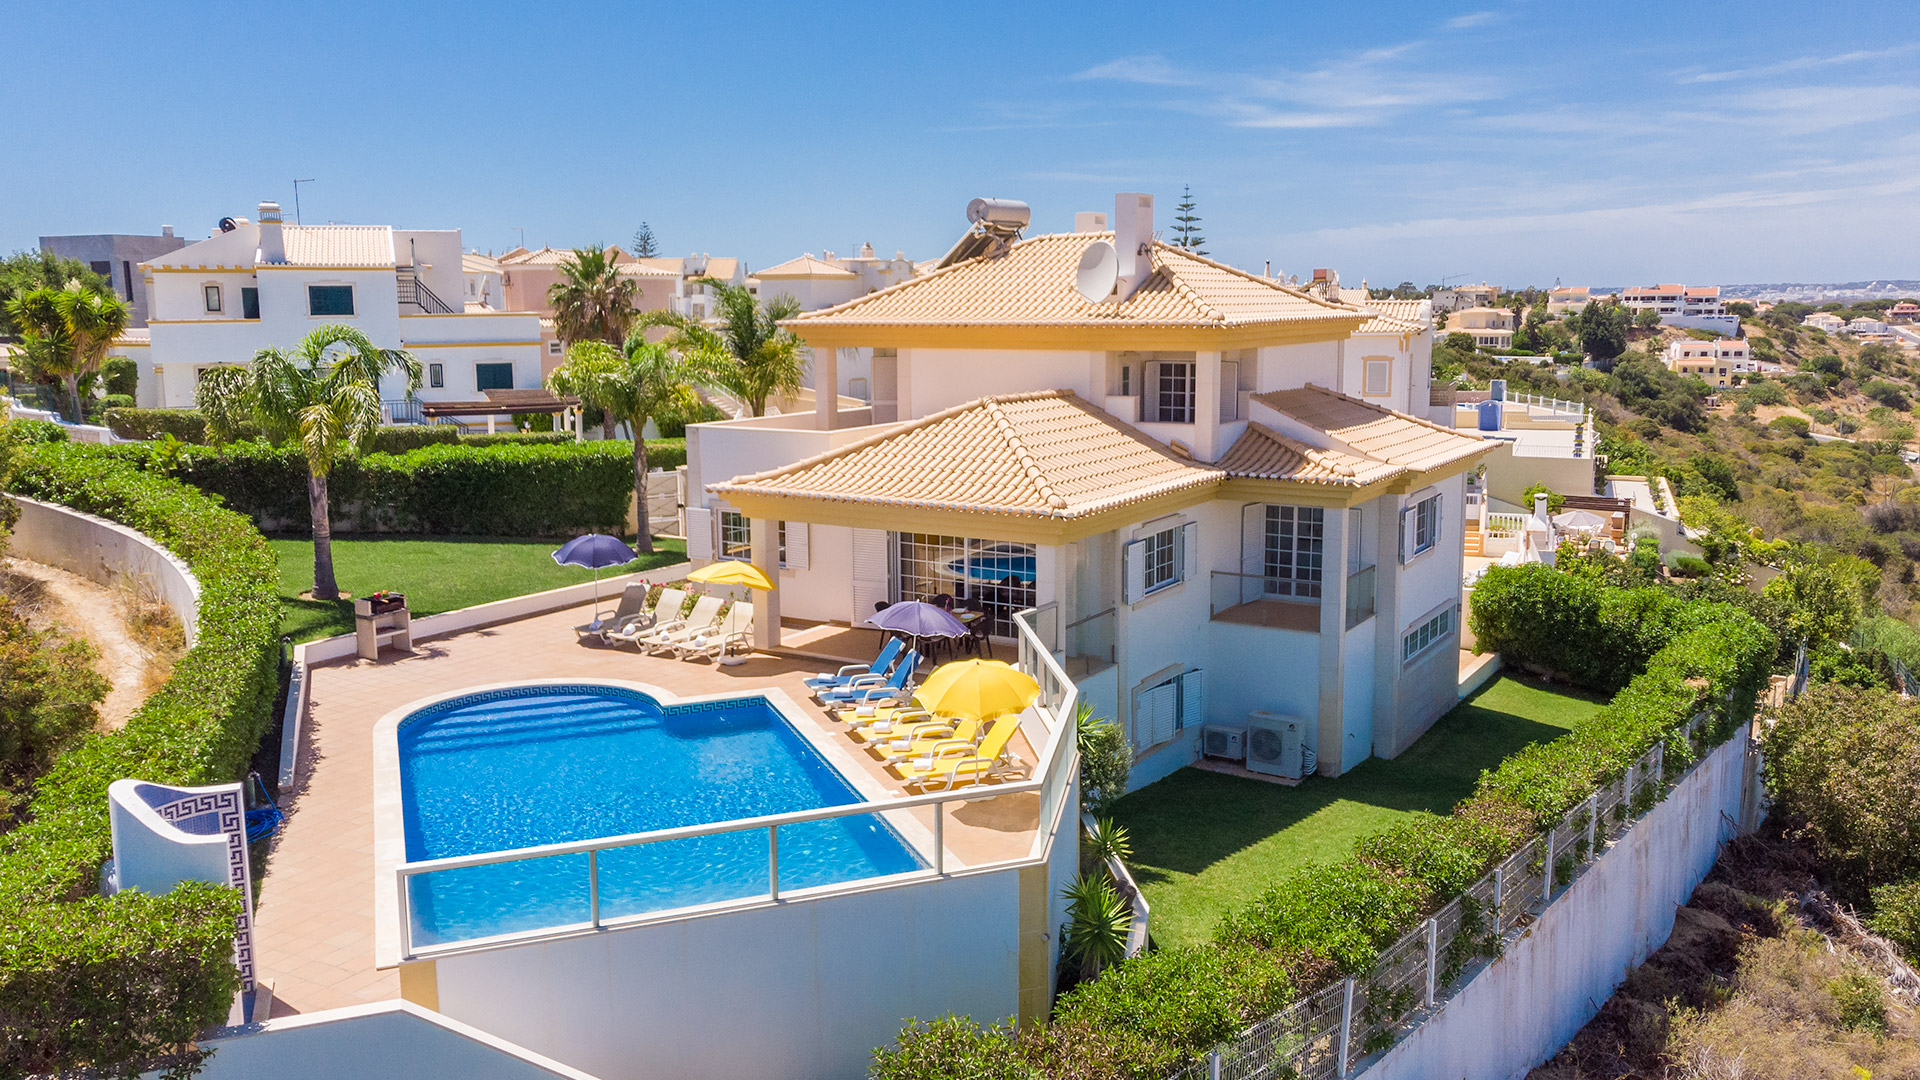 Villa Albufeira LS404, Wonderful and luxury villa in Albufeira, on the Algarve, Portugal  with private pool for 10 persons.....